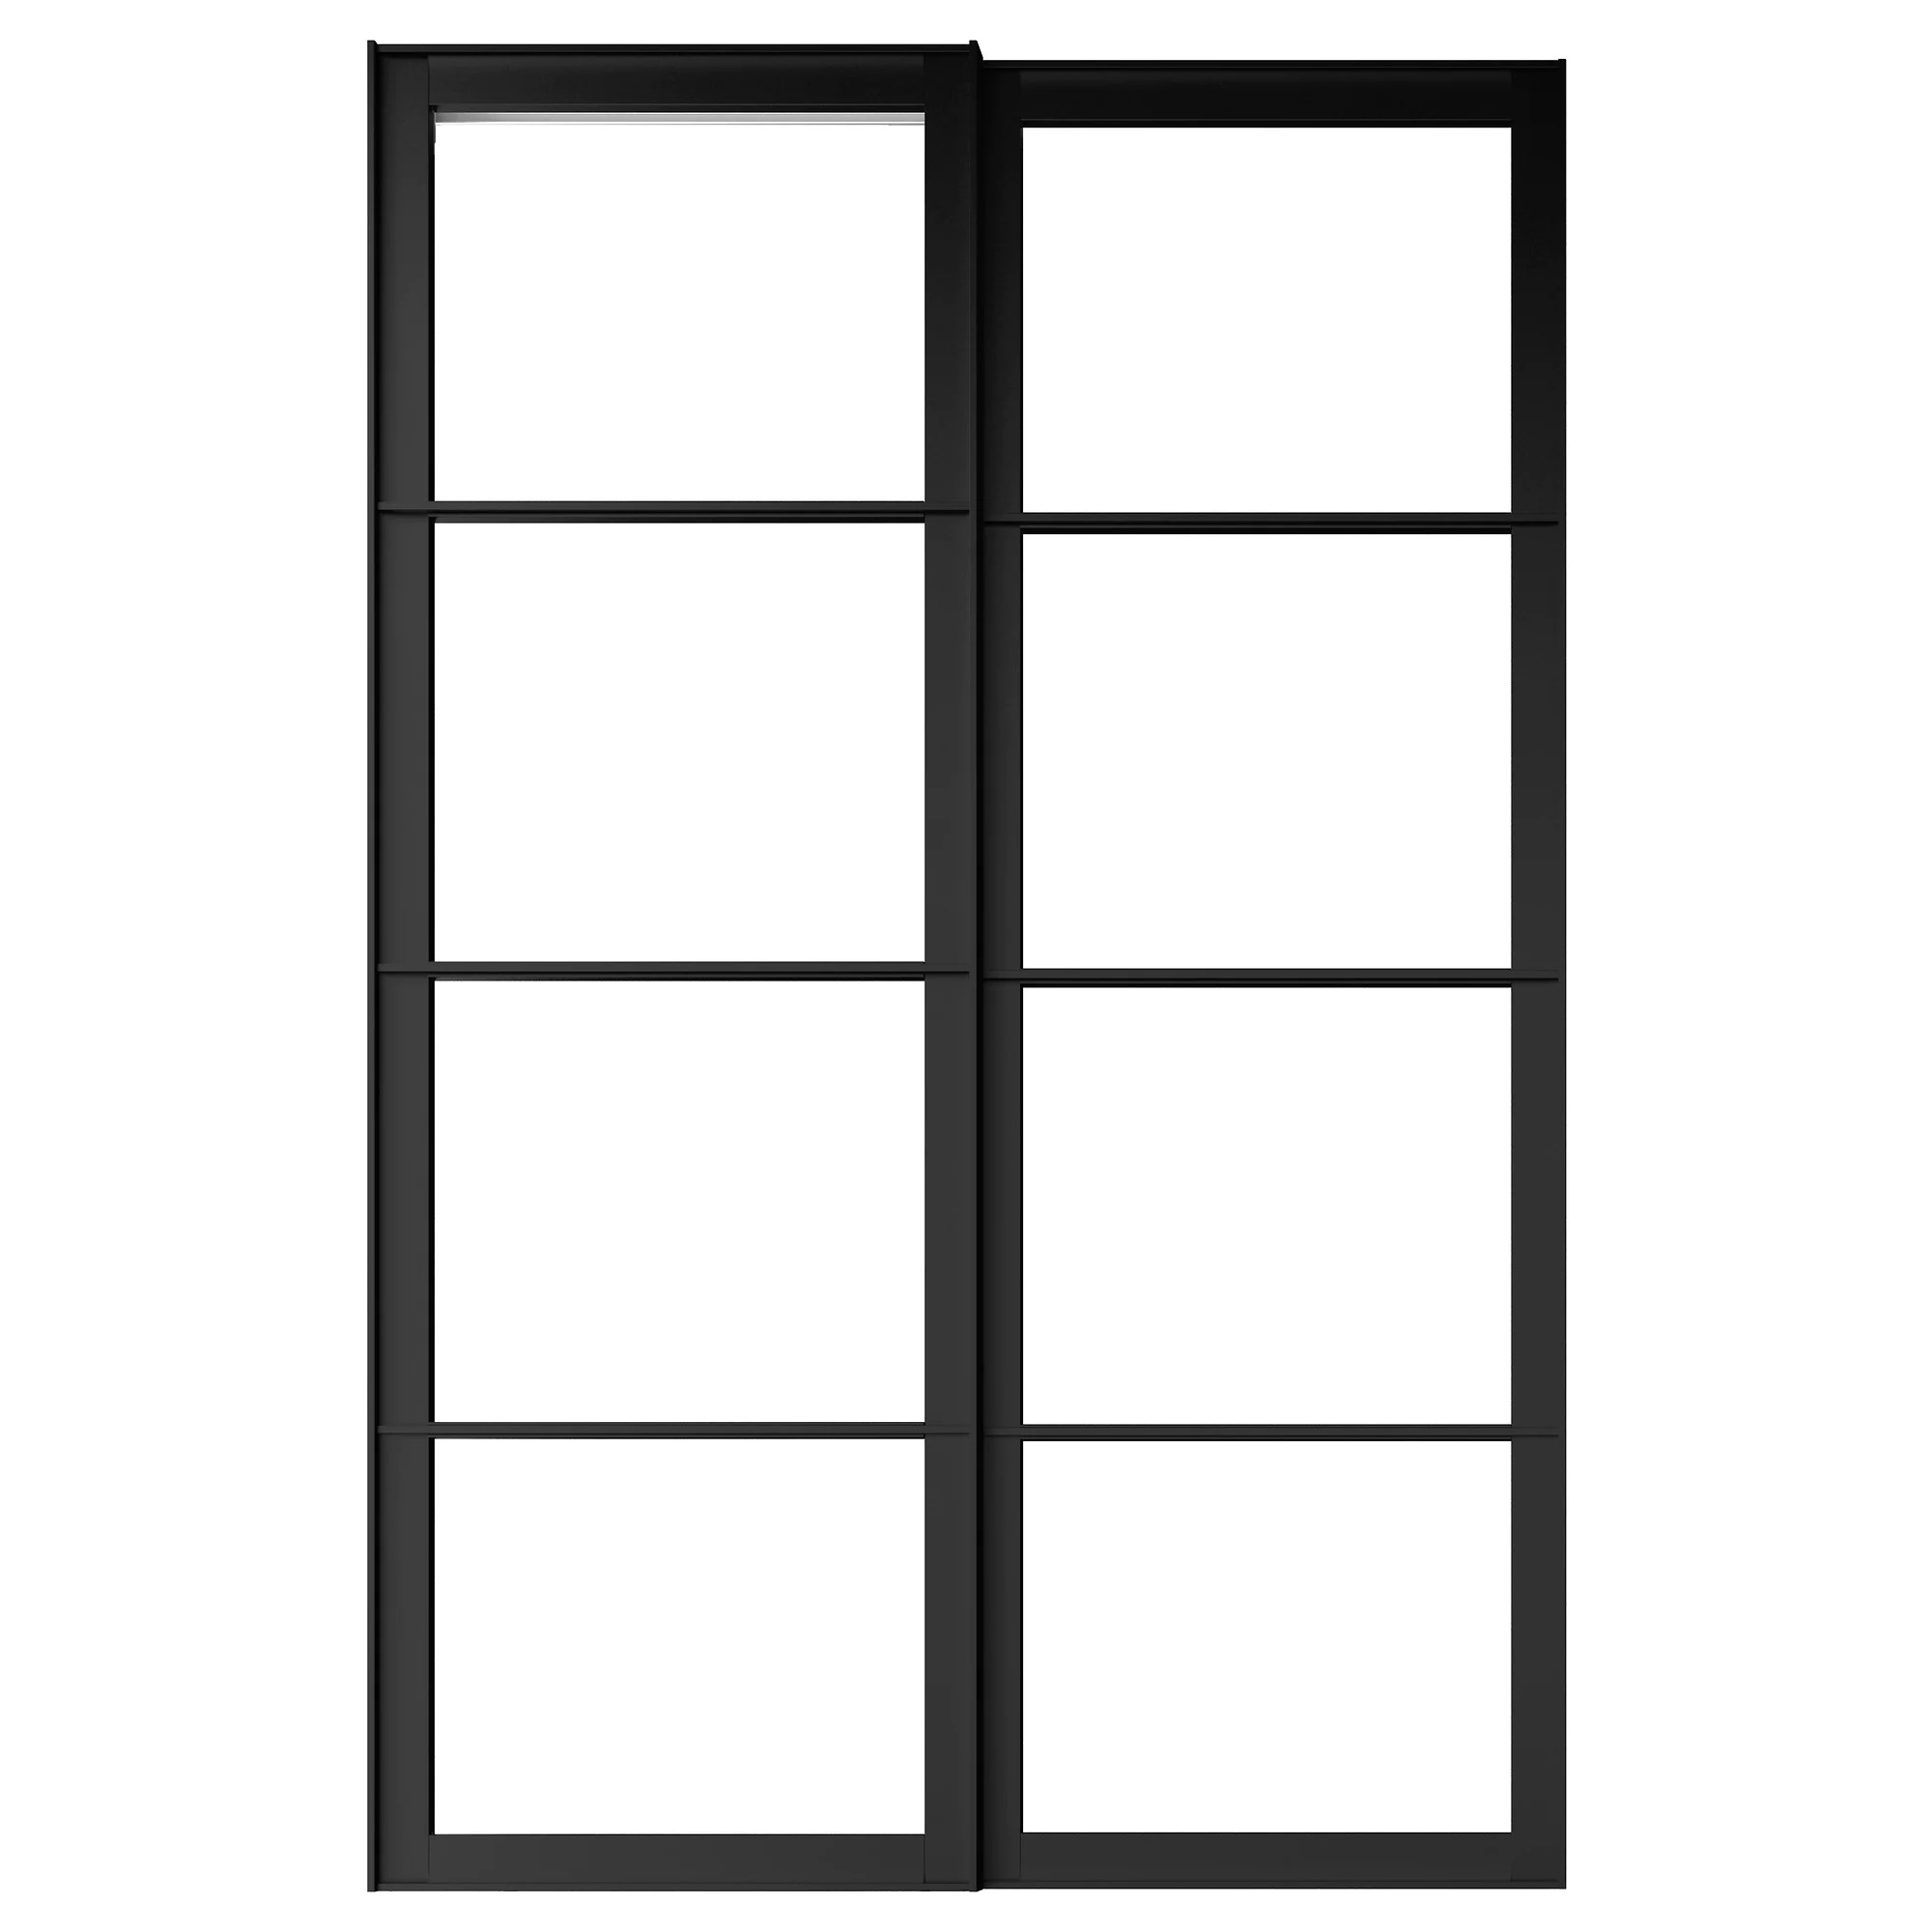 Ikea Pax Click And Collect Pair Of Sliding Door Frames W Rail Pax Black